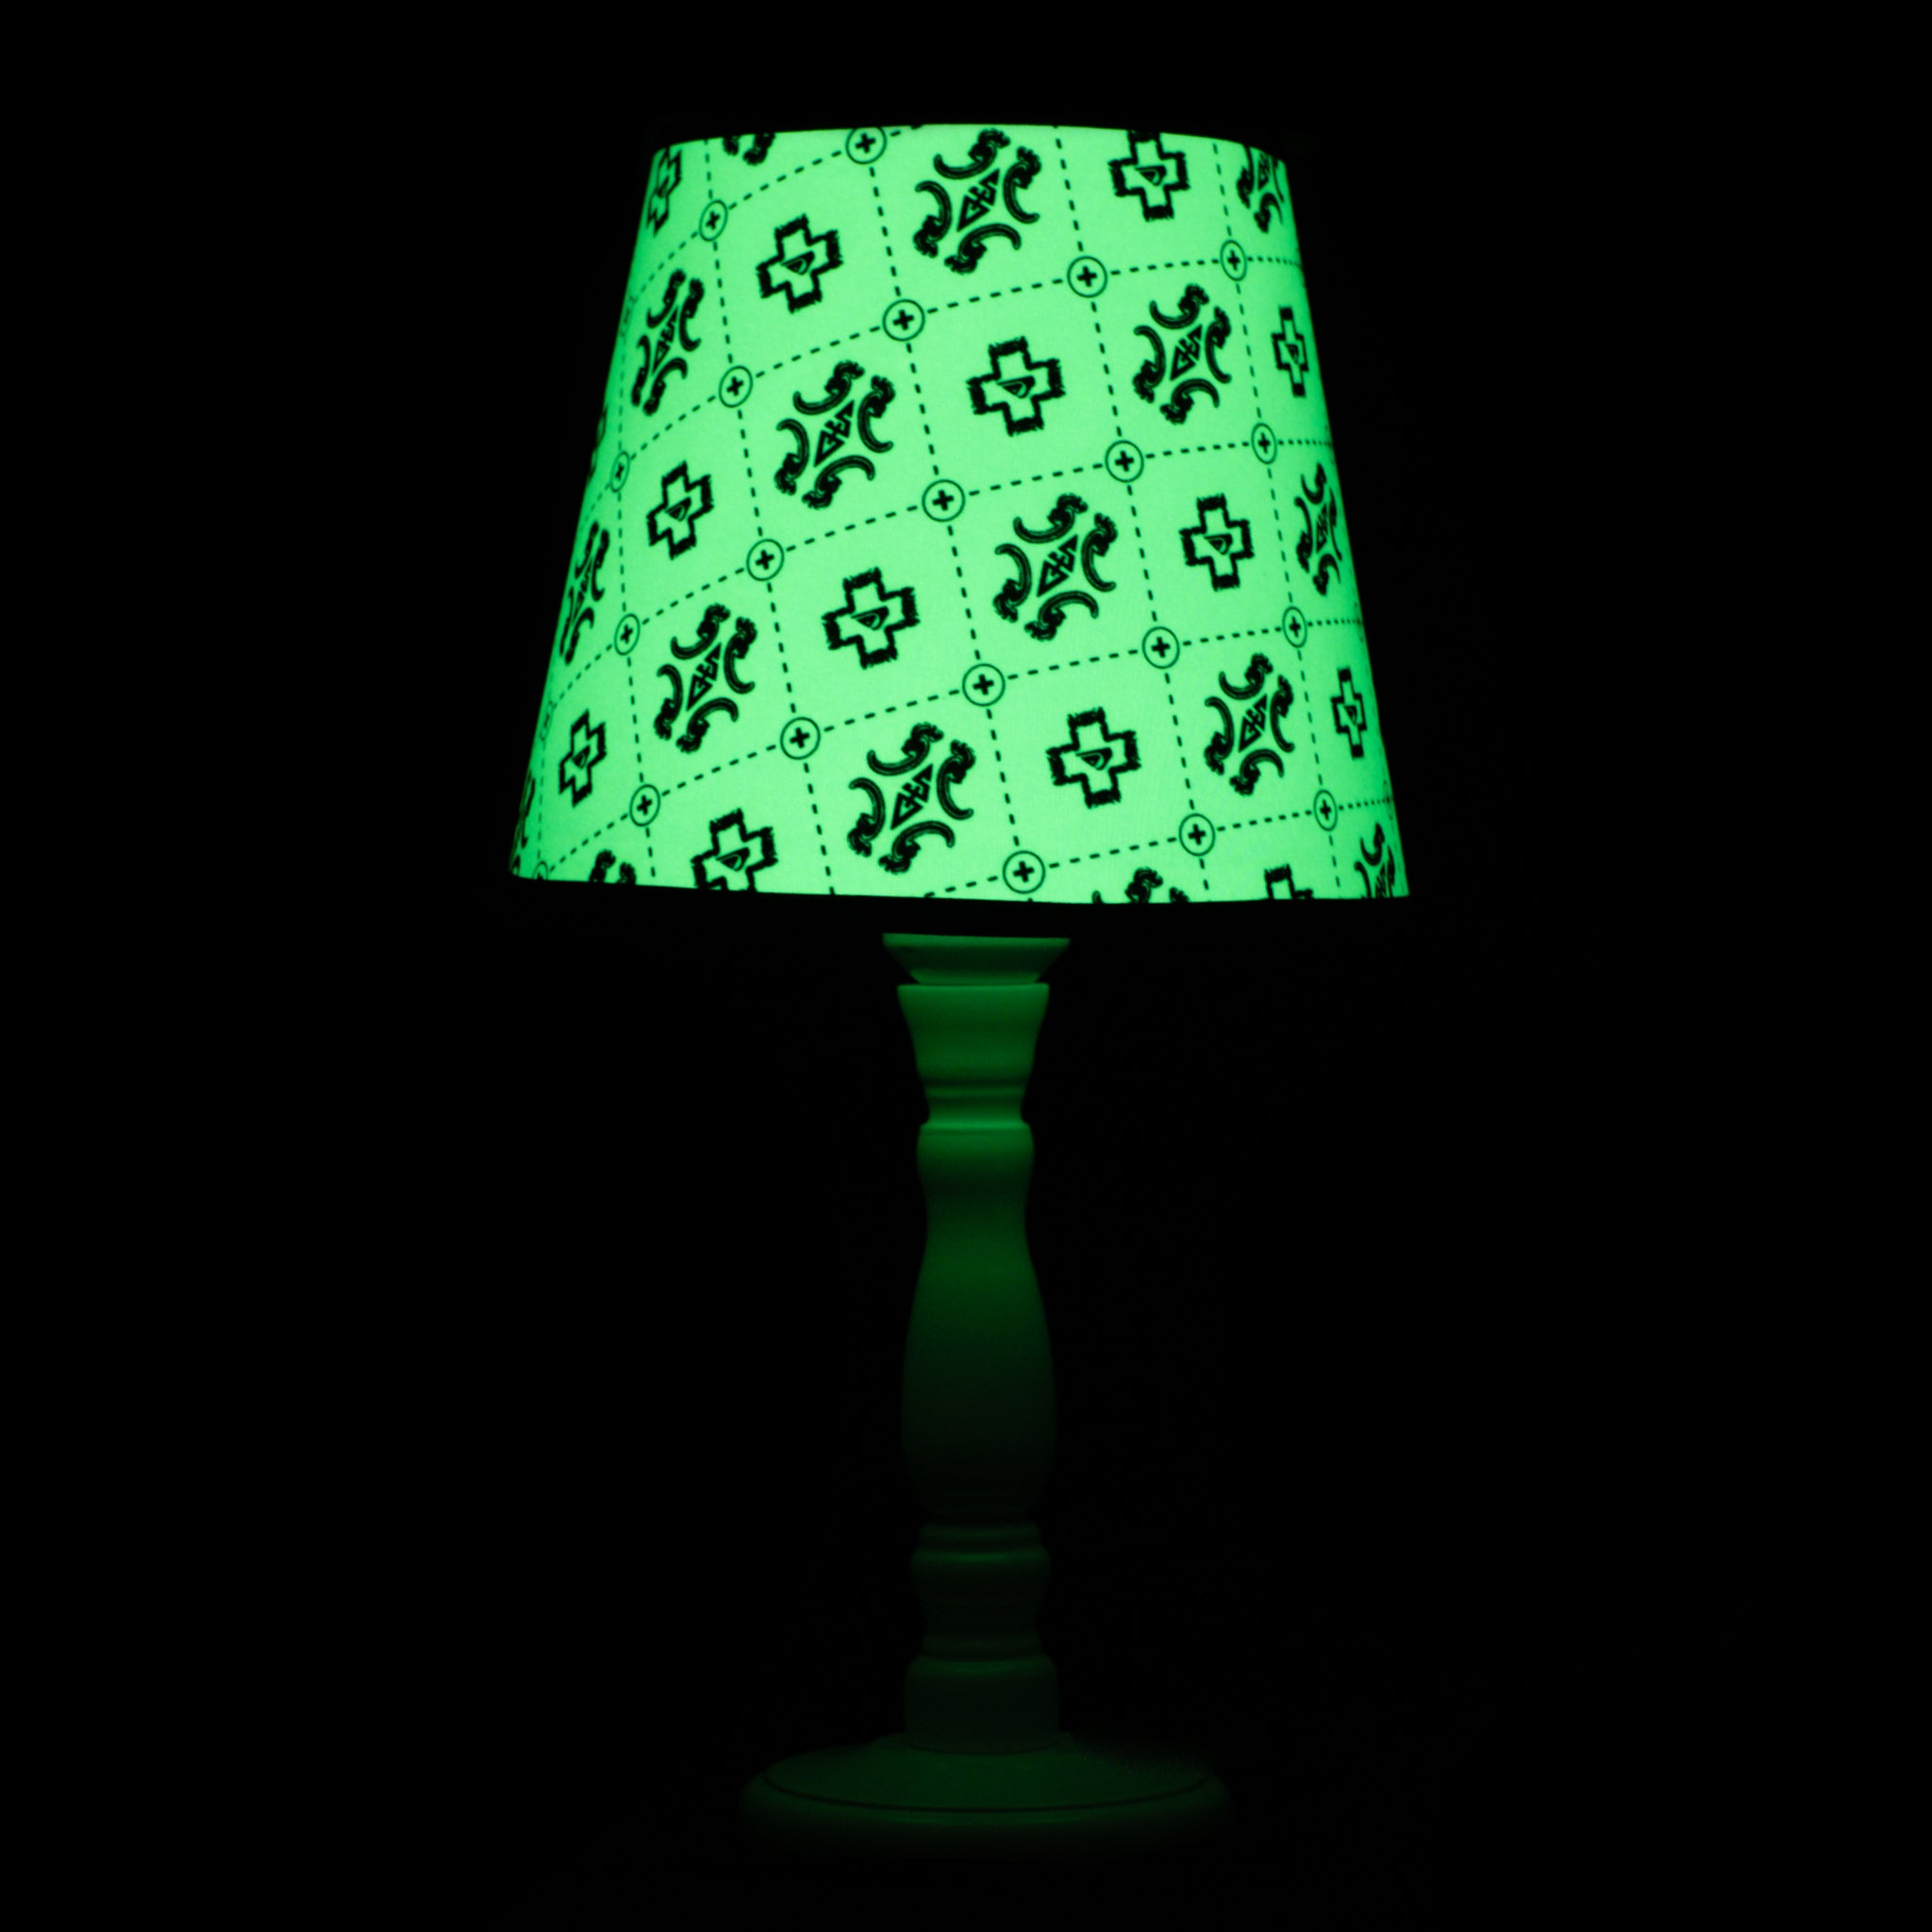 Glow in the dark sustainable off grid lamp